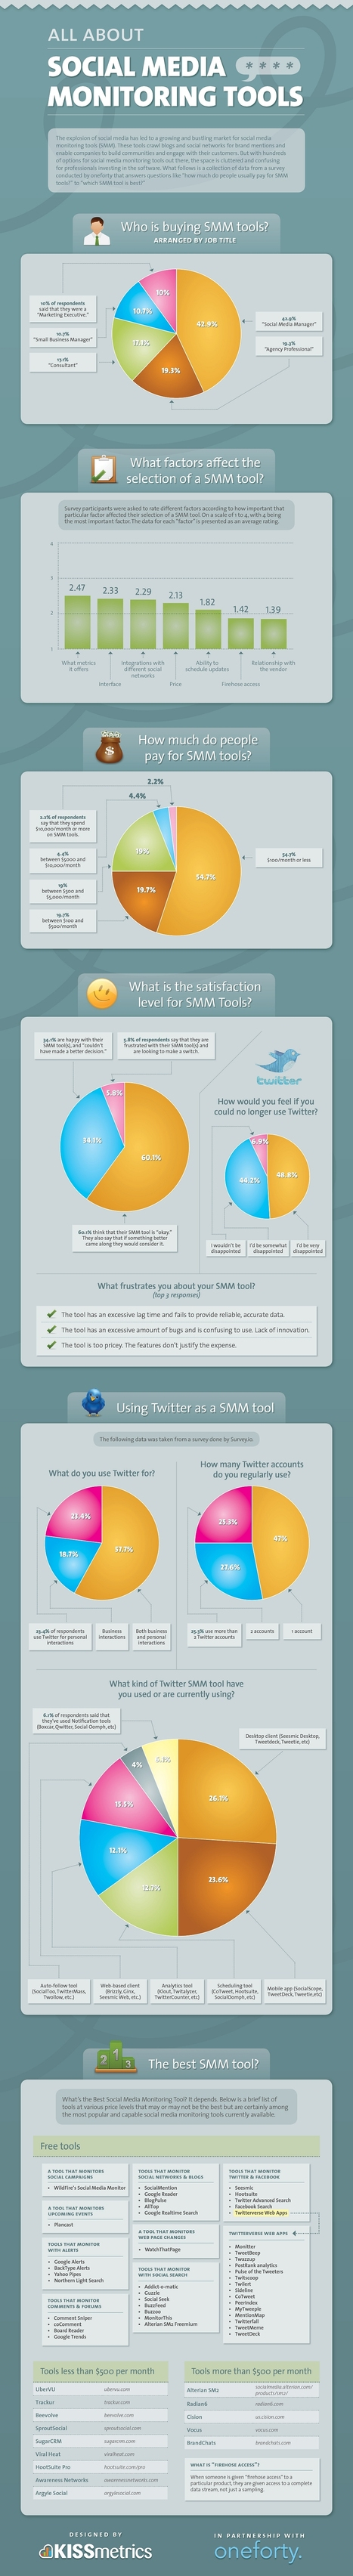 Social Media Monitoring Tools | INFOGRAPHIC | web digital strategy | Scoop.it